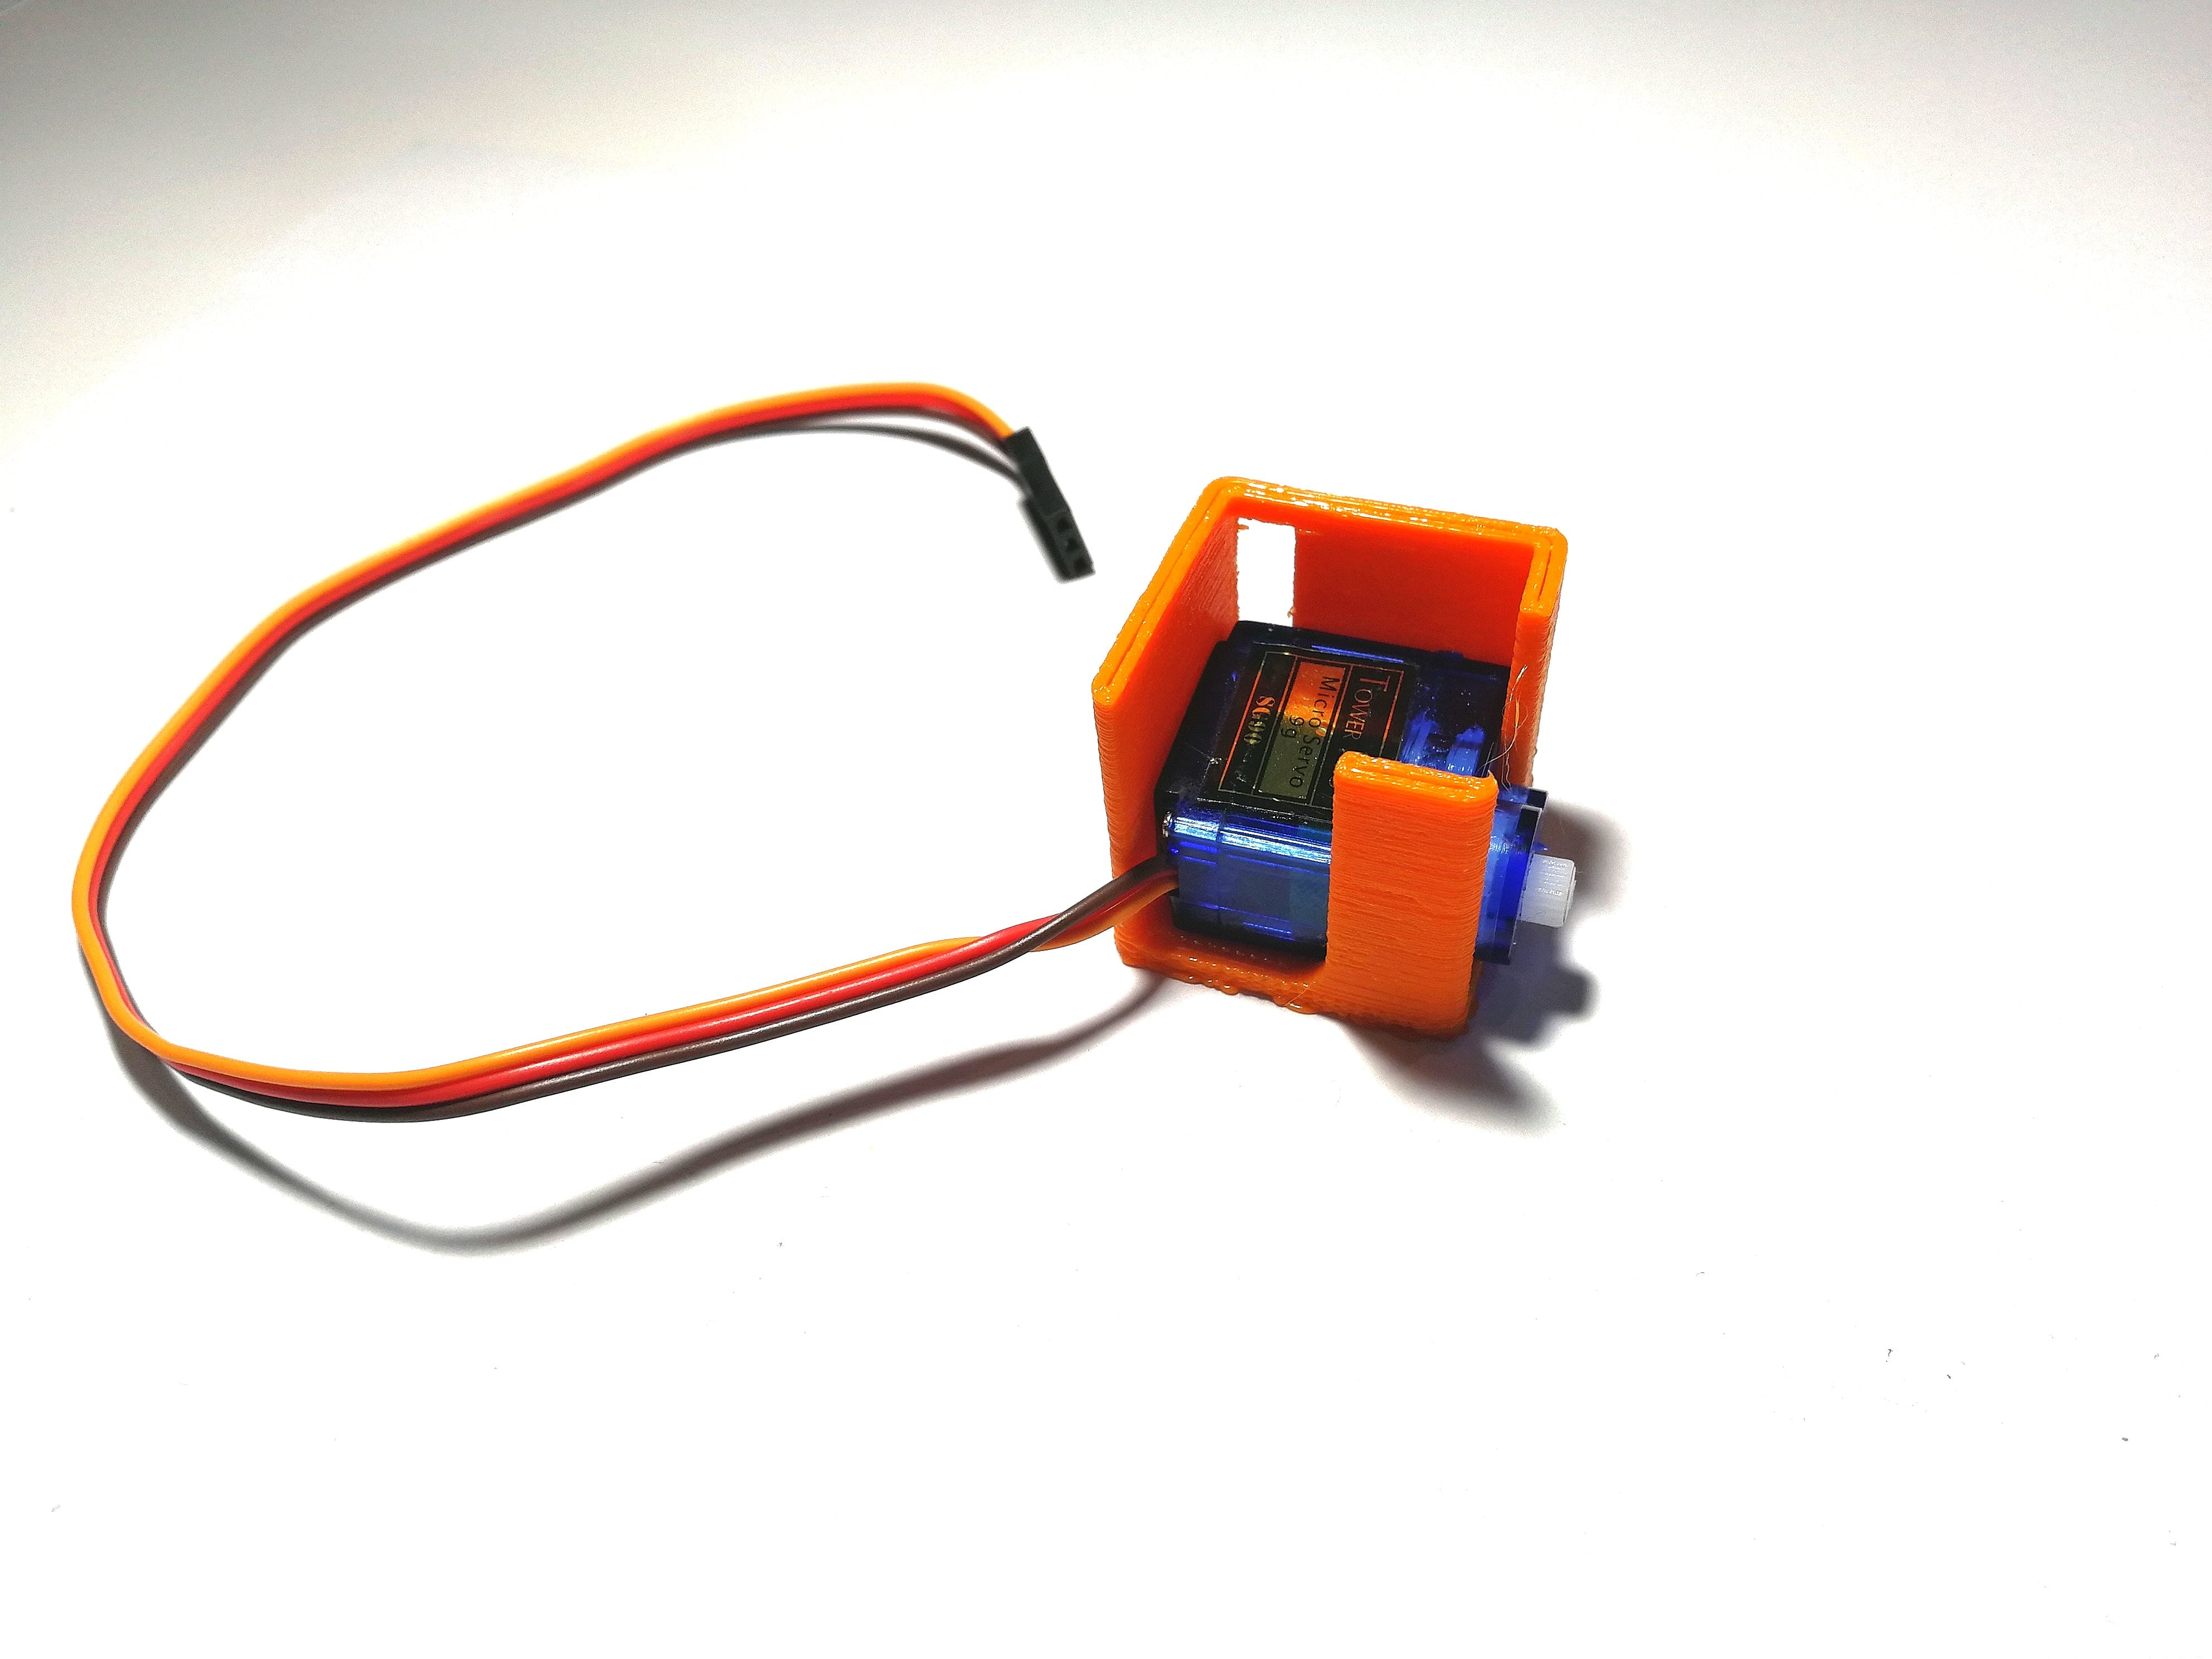 Mount Servo In the 3D Printed Part